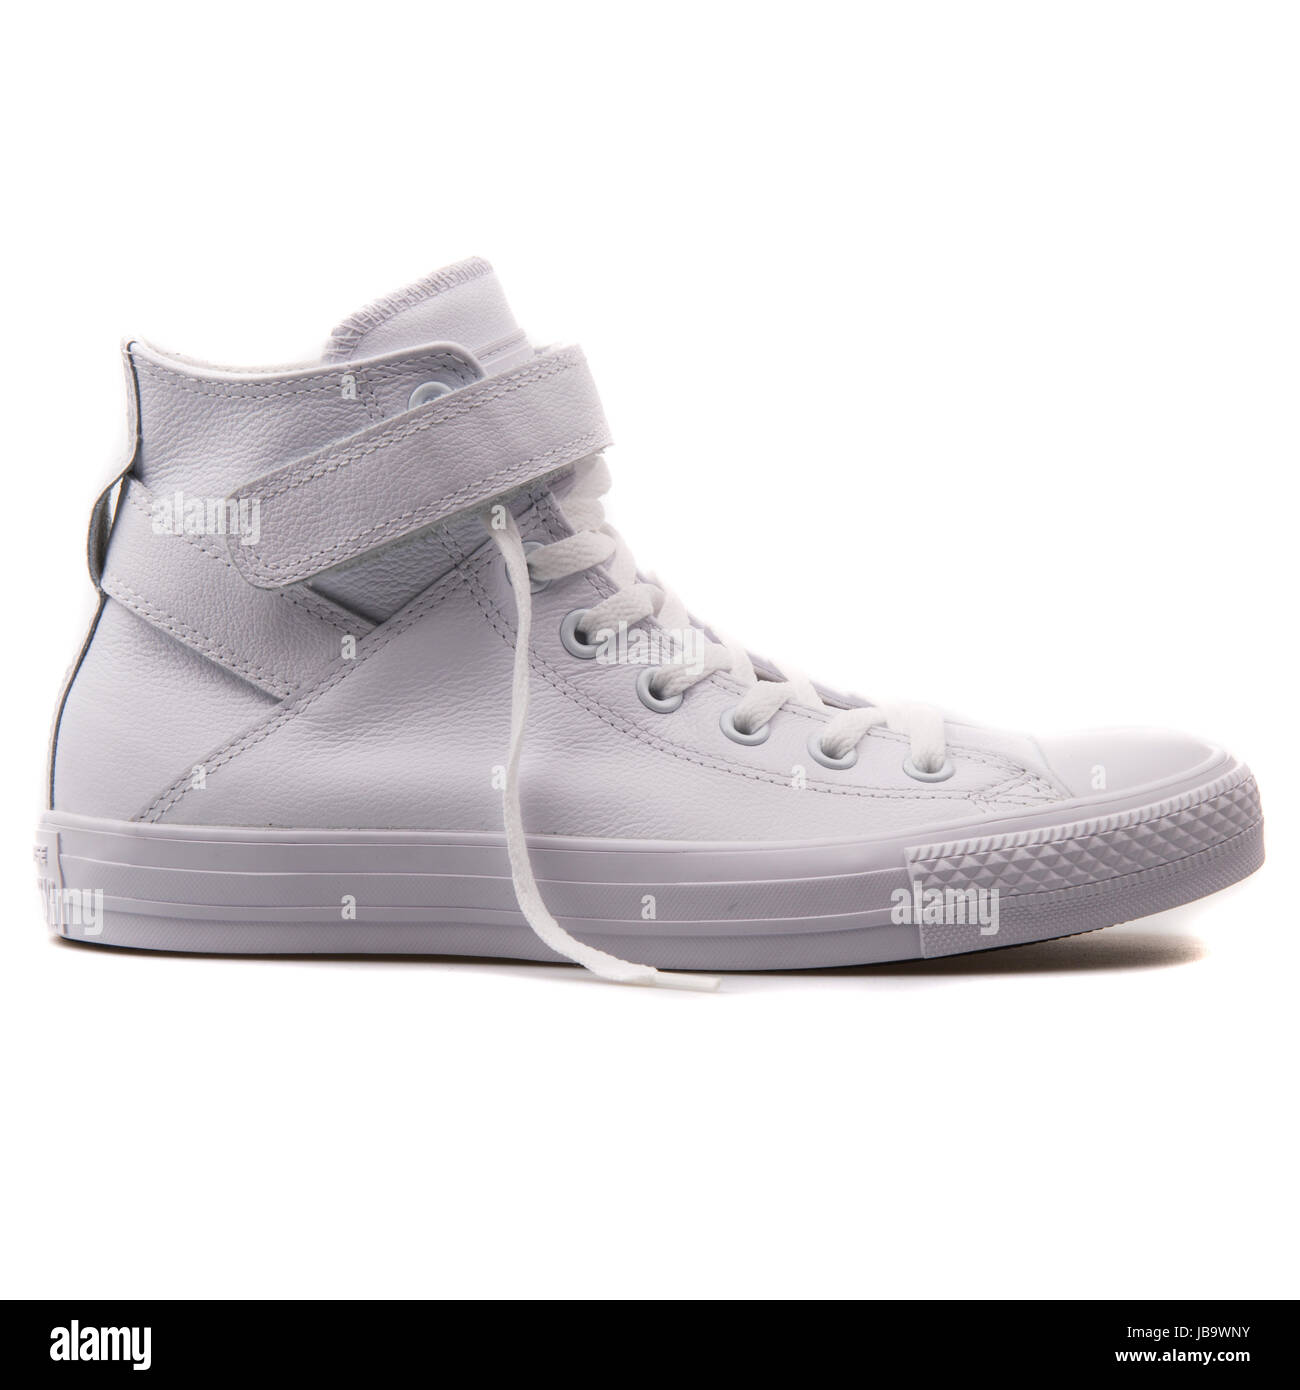 faee0cb0eff4d0 Converse Chuck Taylor All Star Brea Hi White Leather Women s Shoes - 549582C